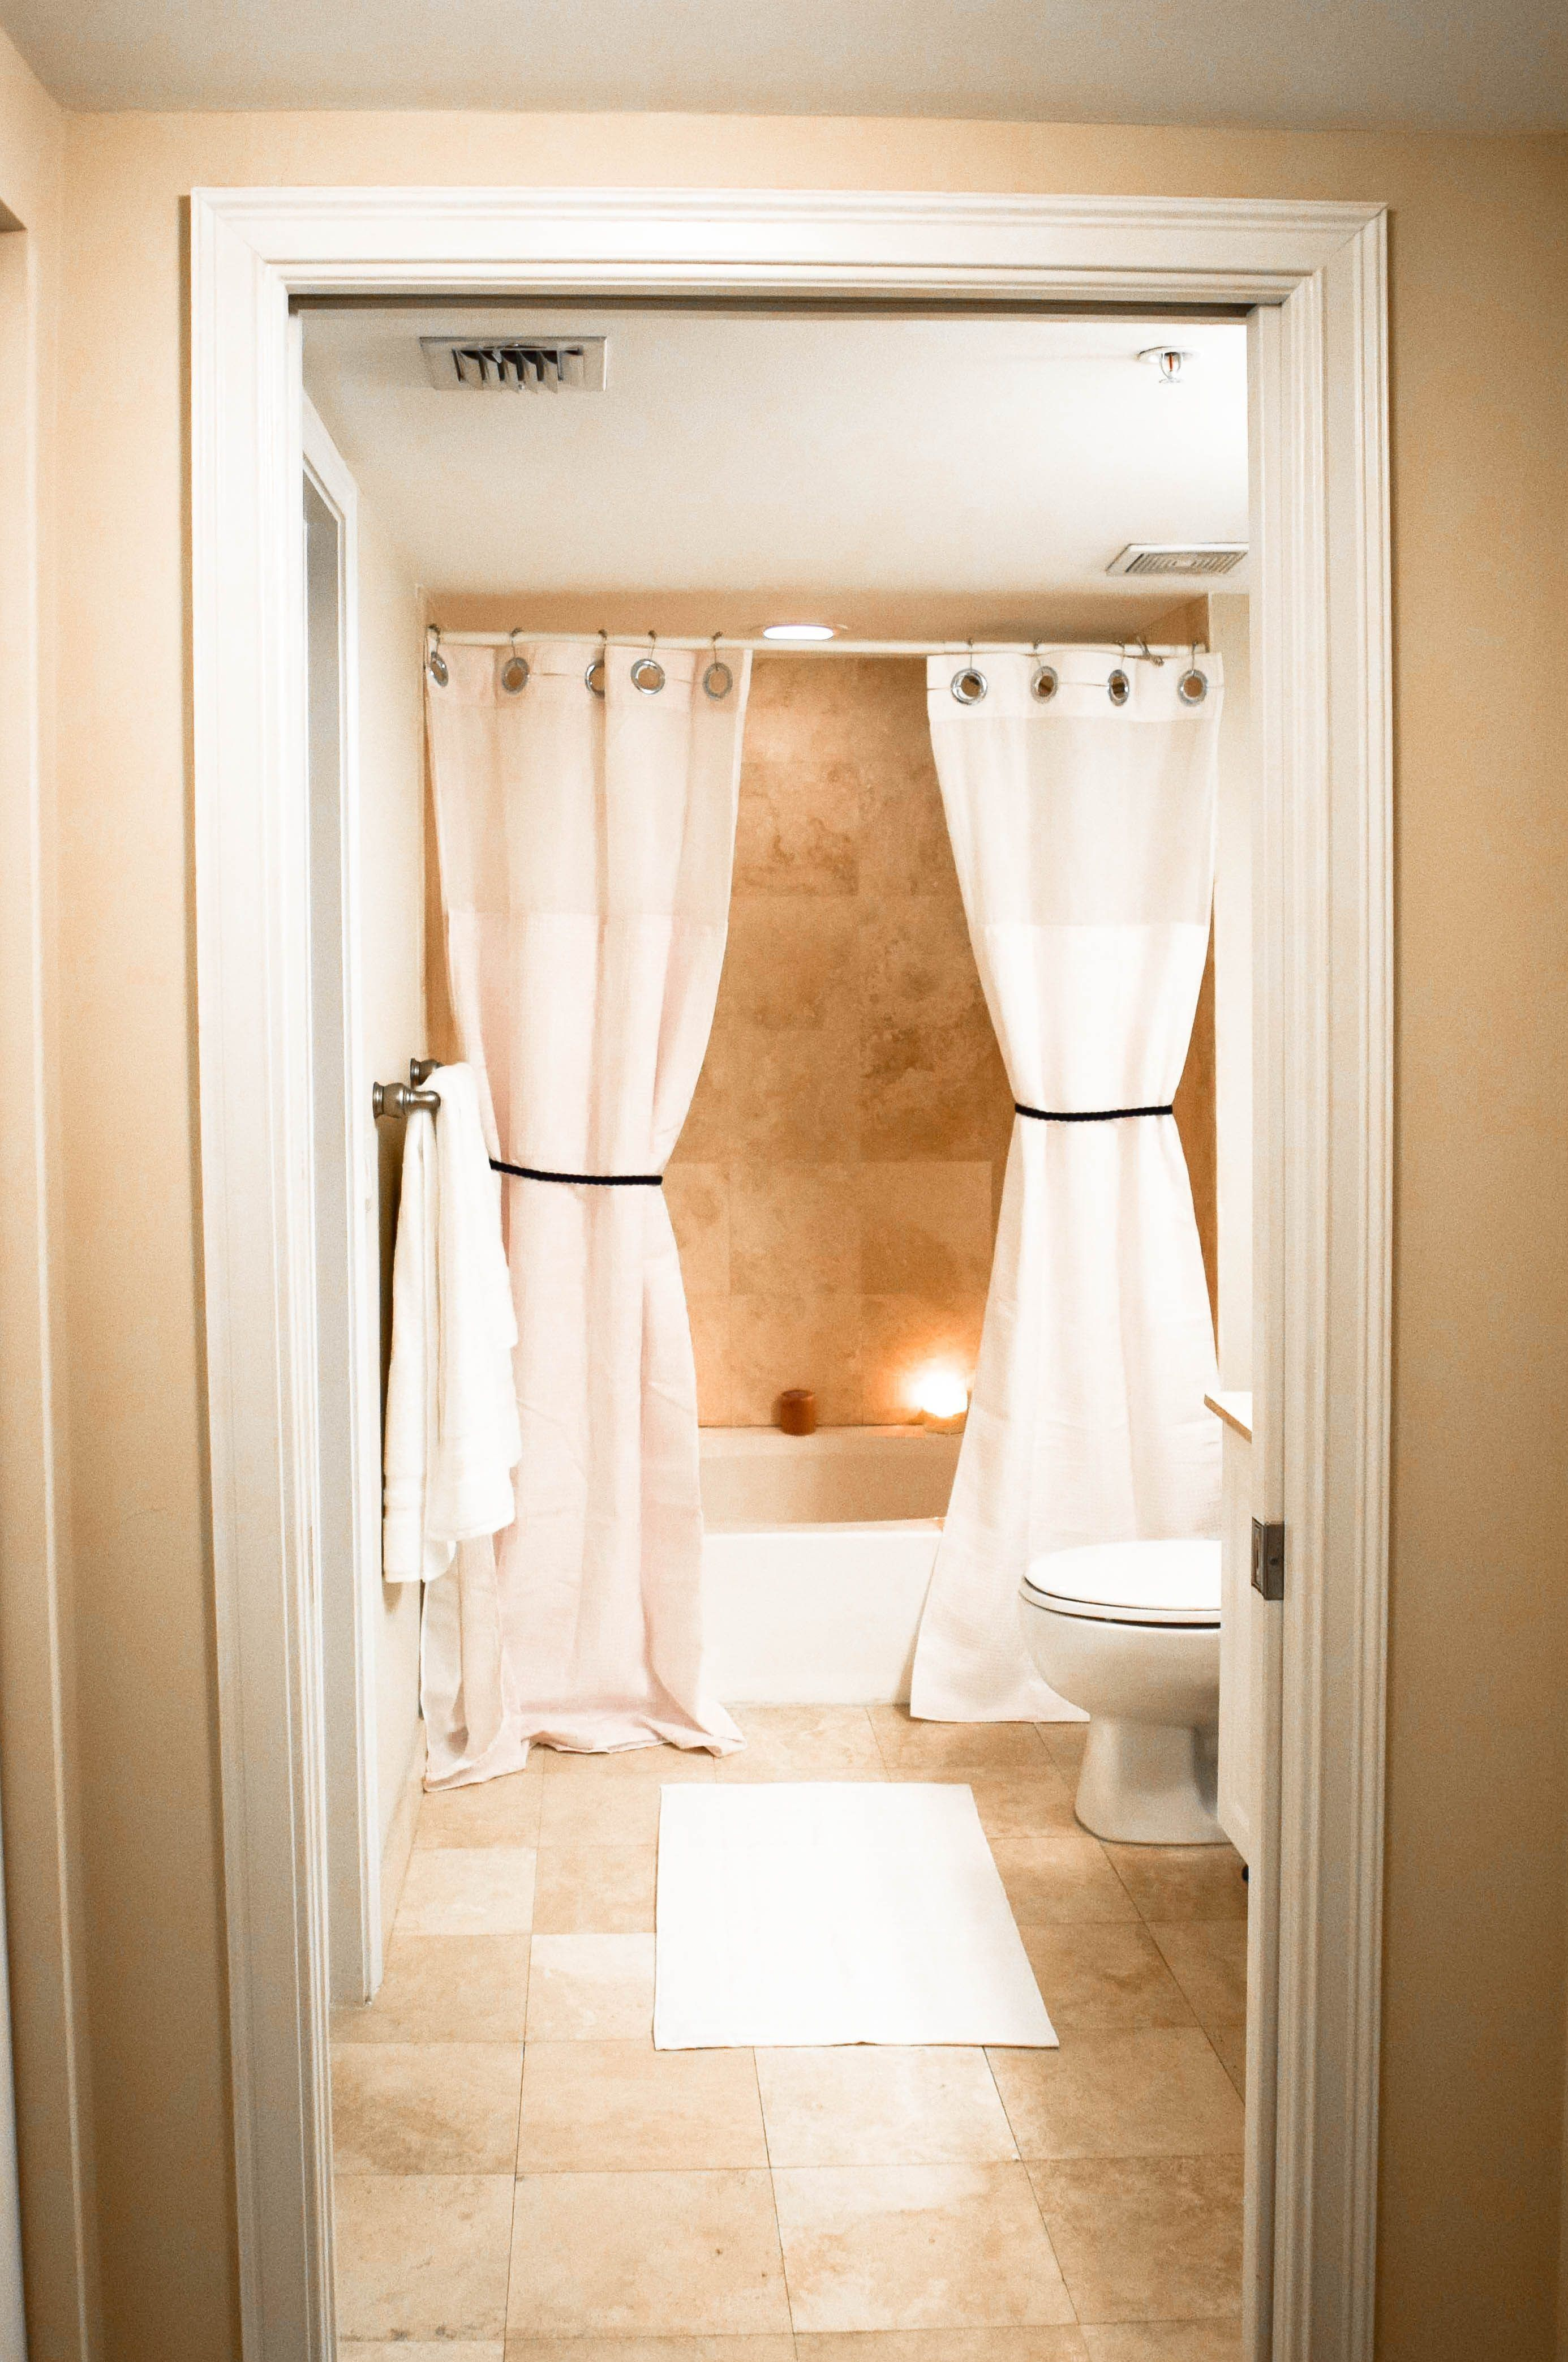 How To Affordably Make Your Bathroom Feel Like A Luxurious Hotels The Confused Millennial Bathroom Interior Design Luxury Bathroom Bathroom Design